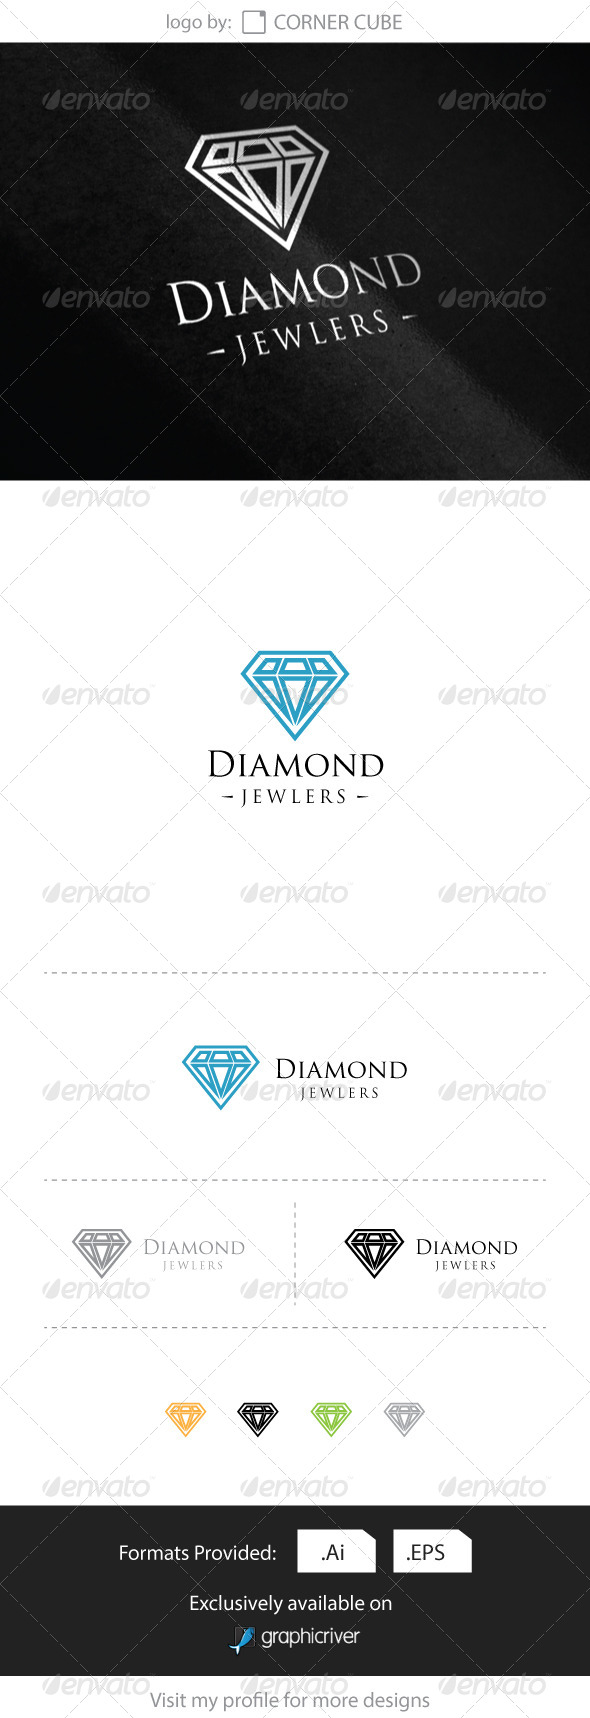 GraphicRiver Diamond Jewelers Logo 8286284